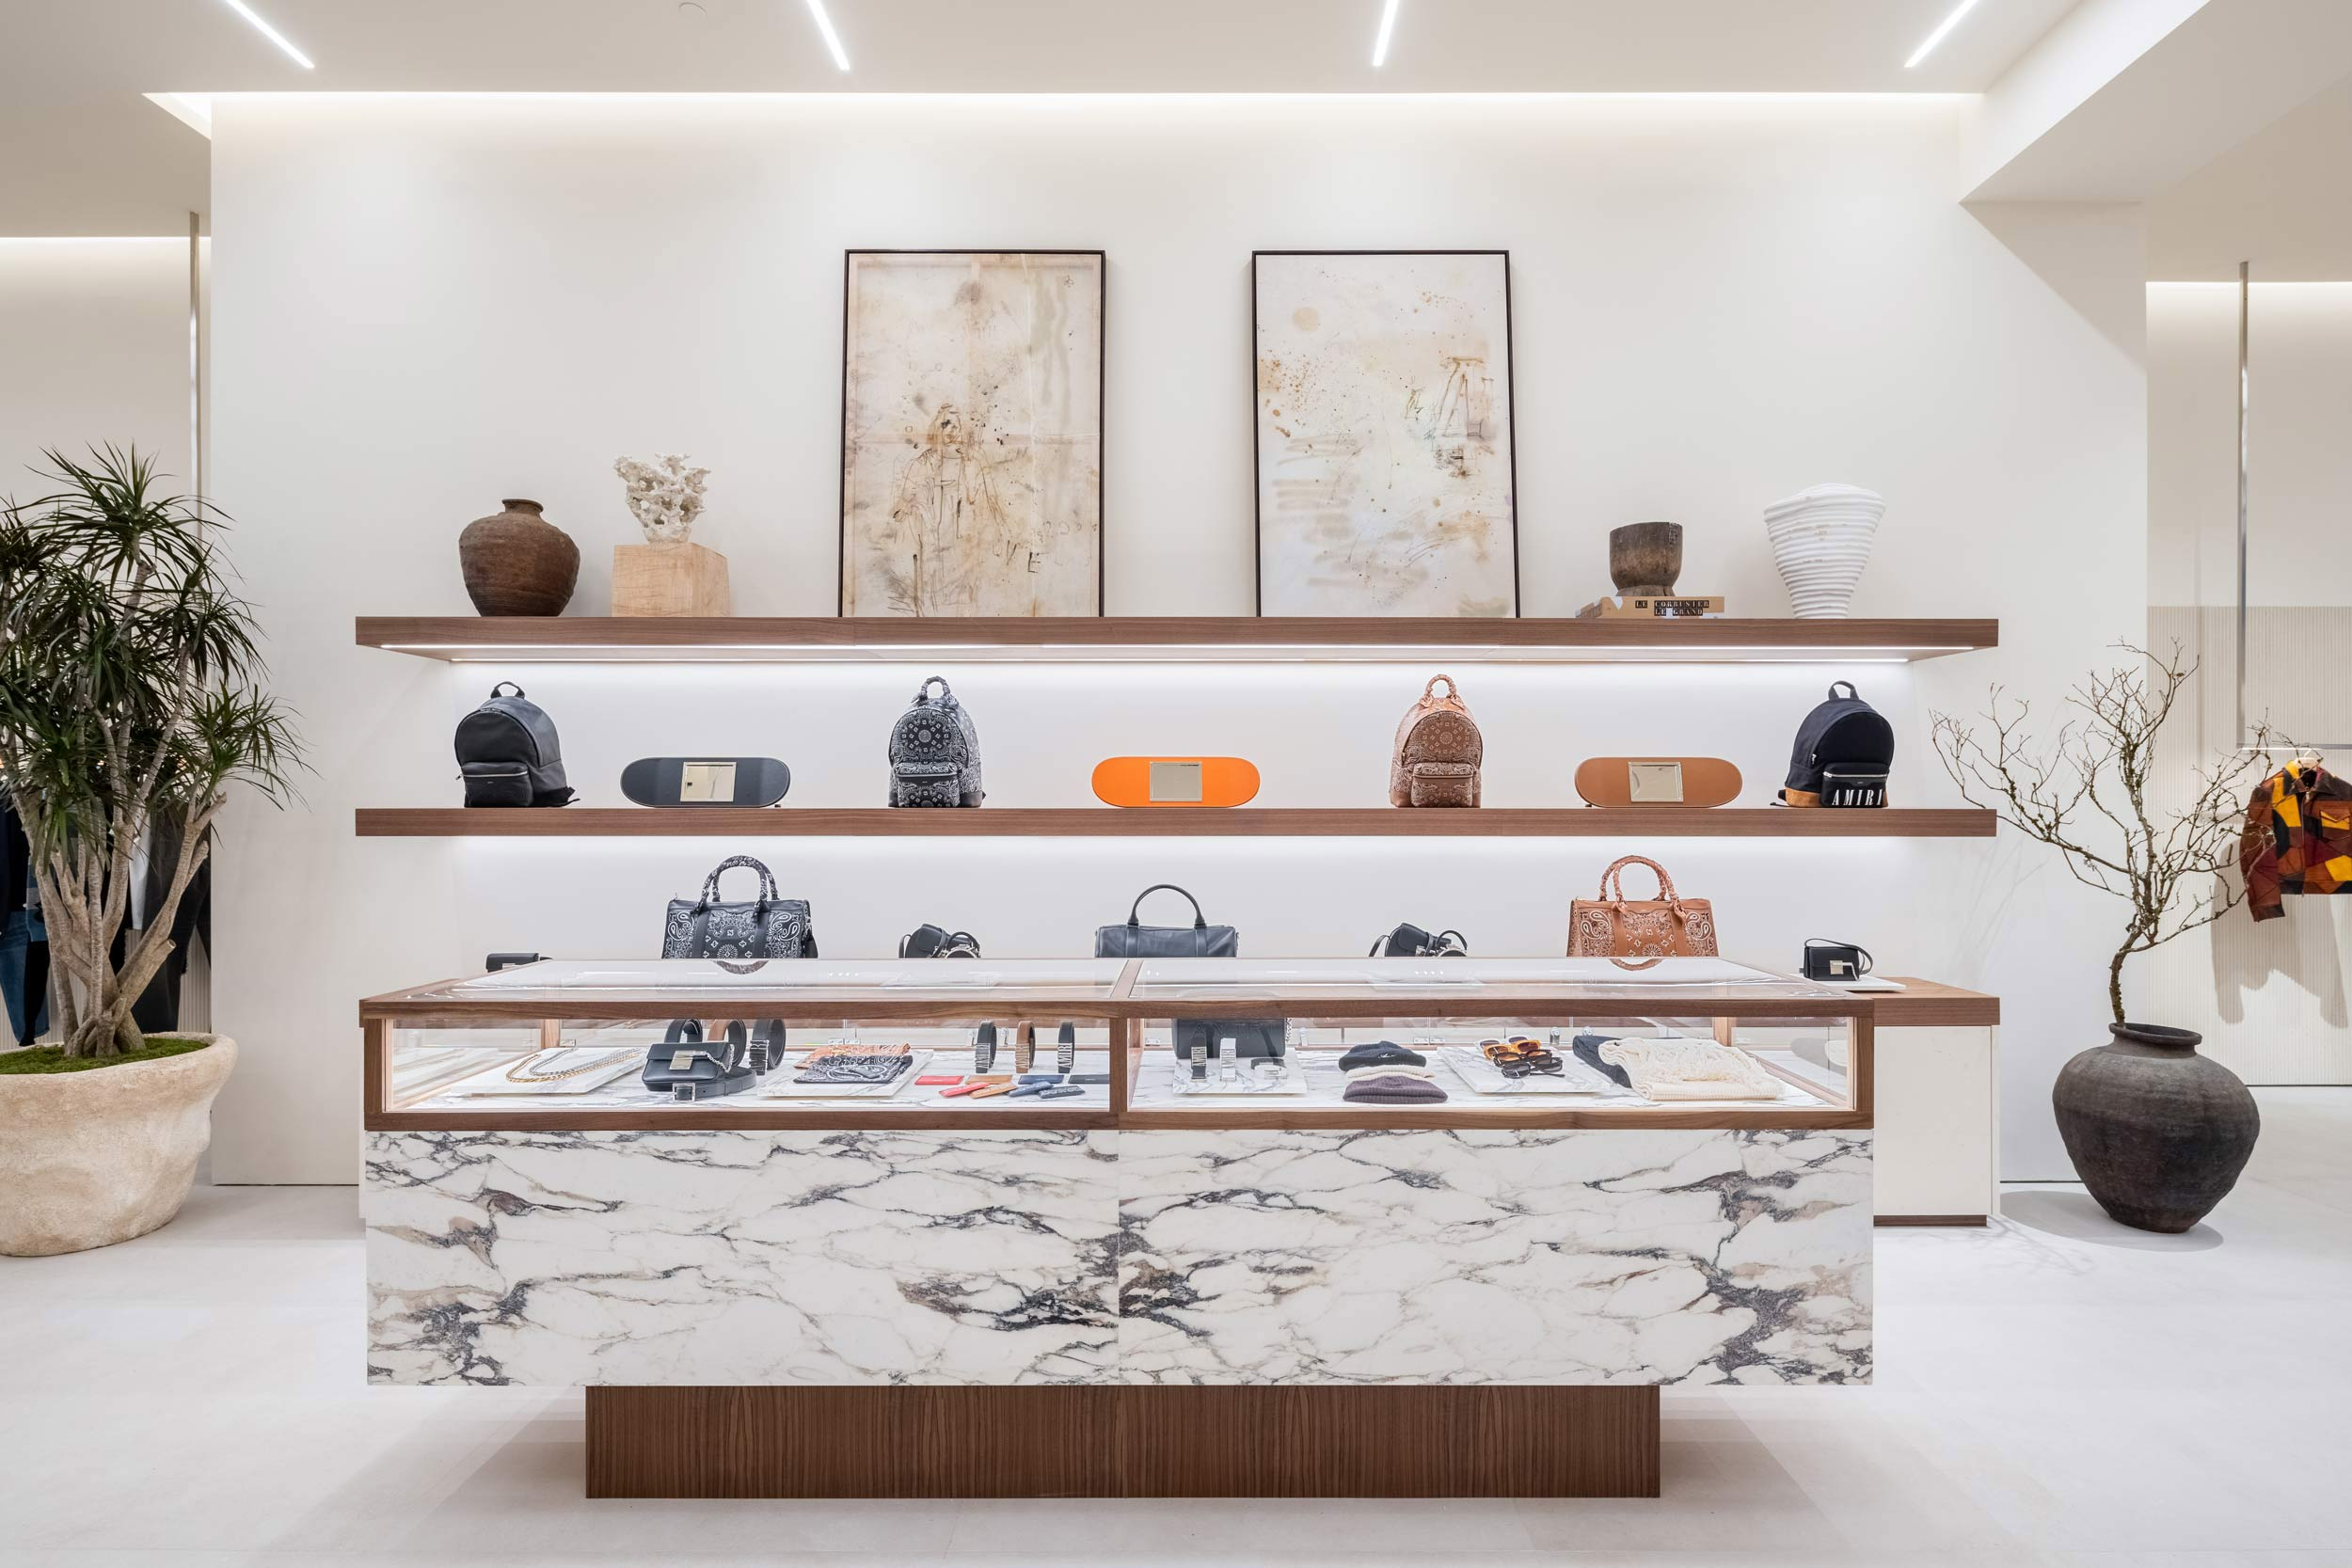 AMIRI's first NYC store re-cements SoHo's artistic identity